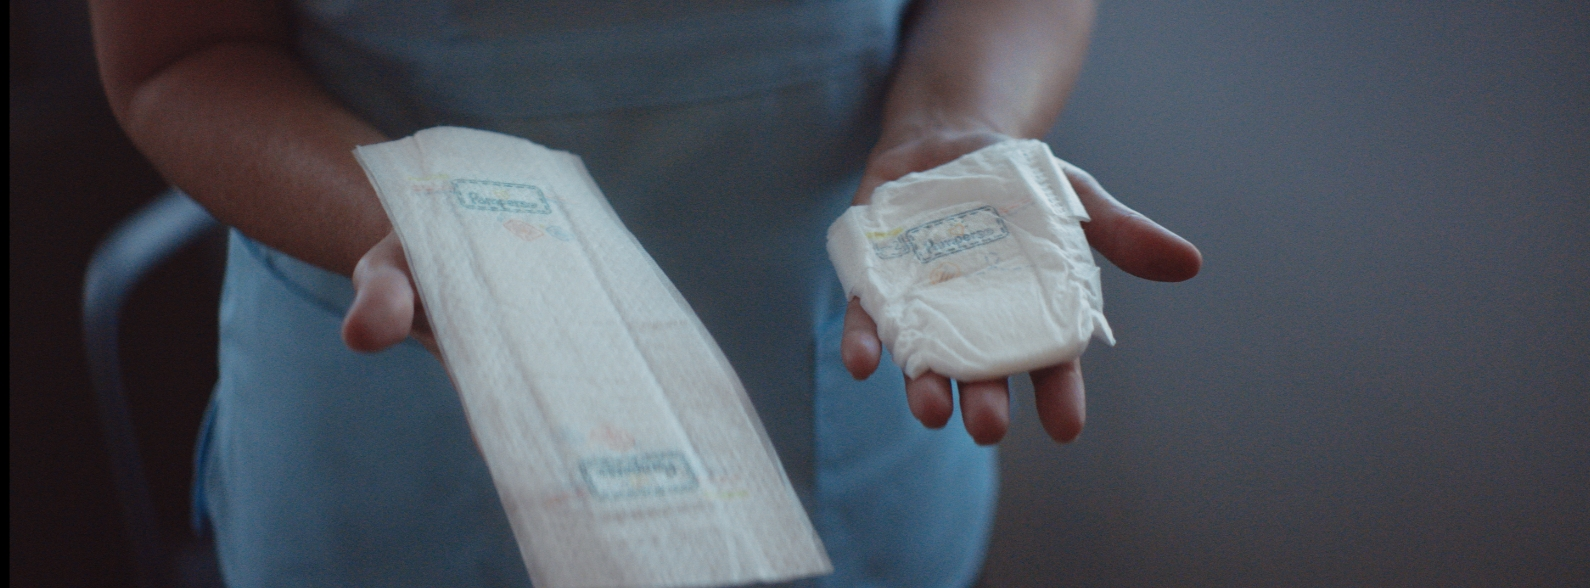 Pampers Debuts a New Flat Diaper for Preemies—and You Can Help the #LittlestFighters